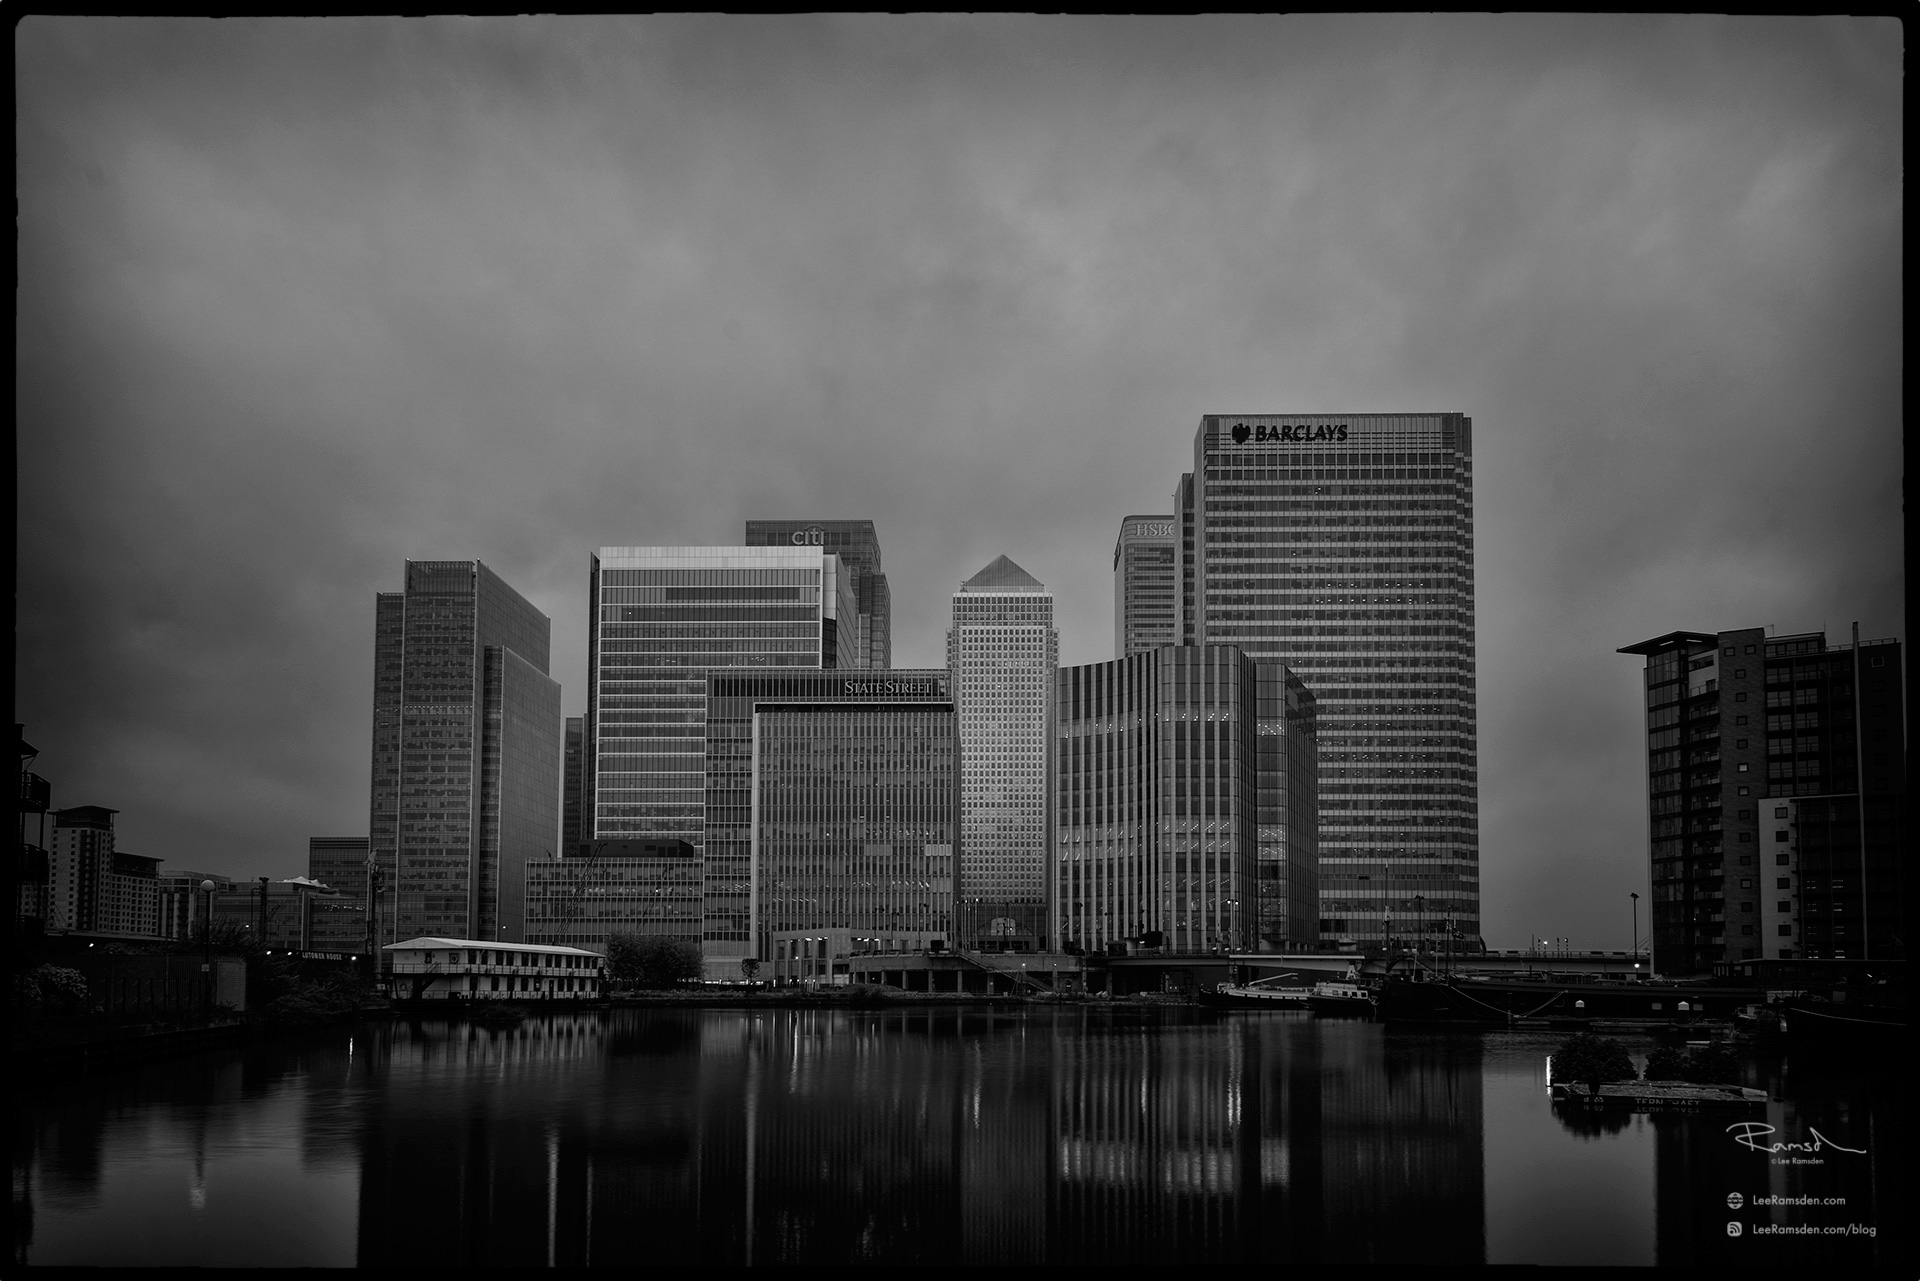 """<img src=""""Canary Wharf"""" alt=""""finanacial district HSBC Barclays office building river thames dock isle of dogs lee ramsden"""">"""